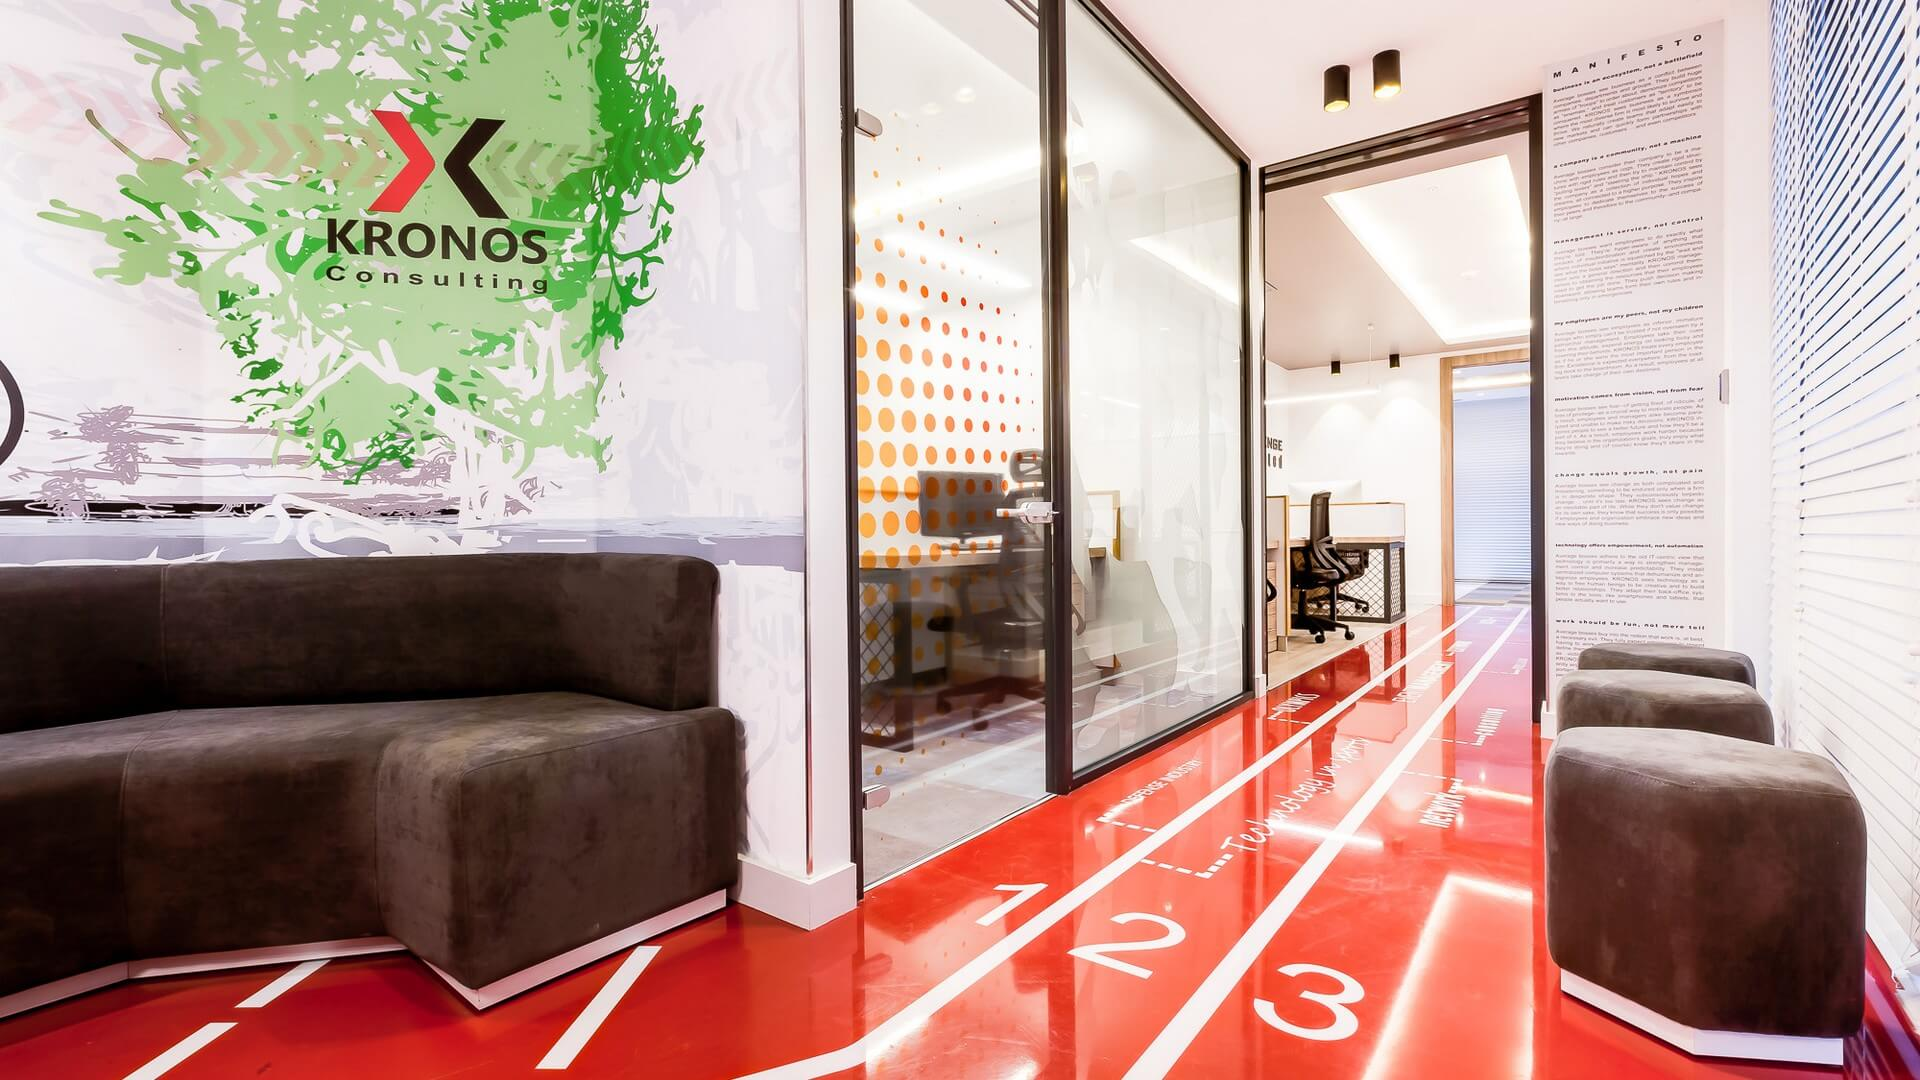 Kronos  Consulting, Offices